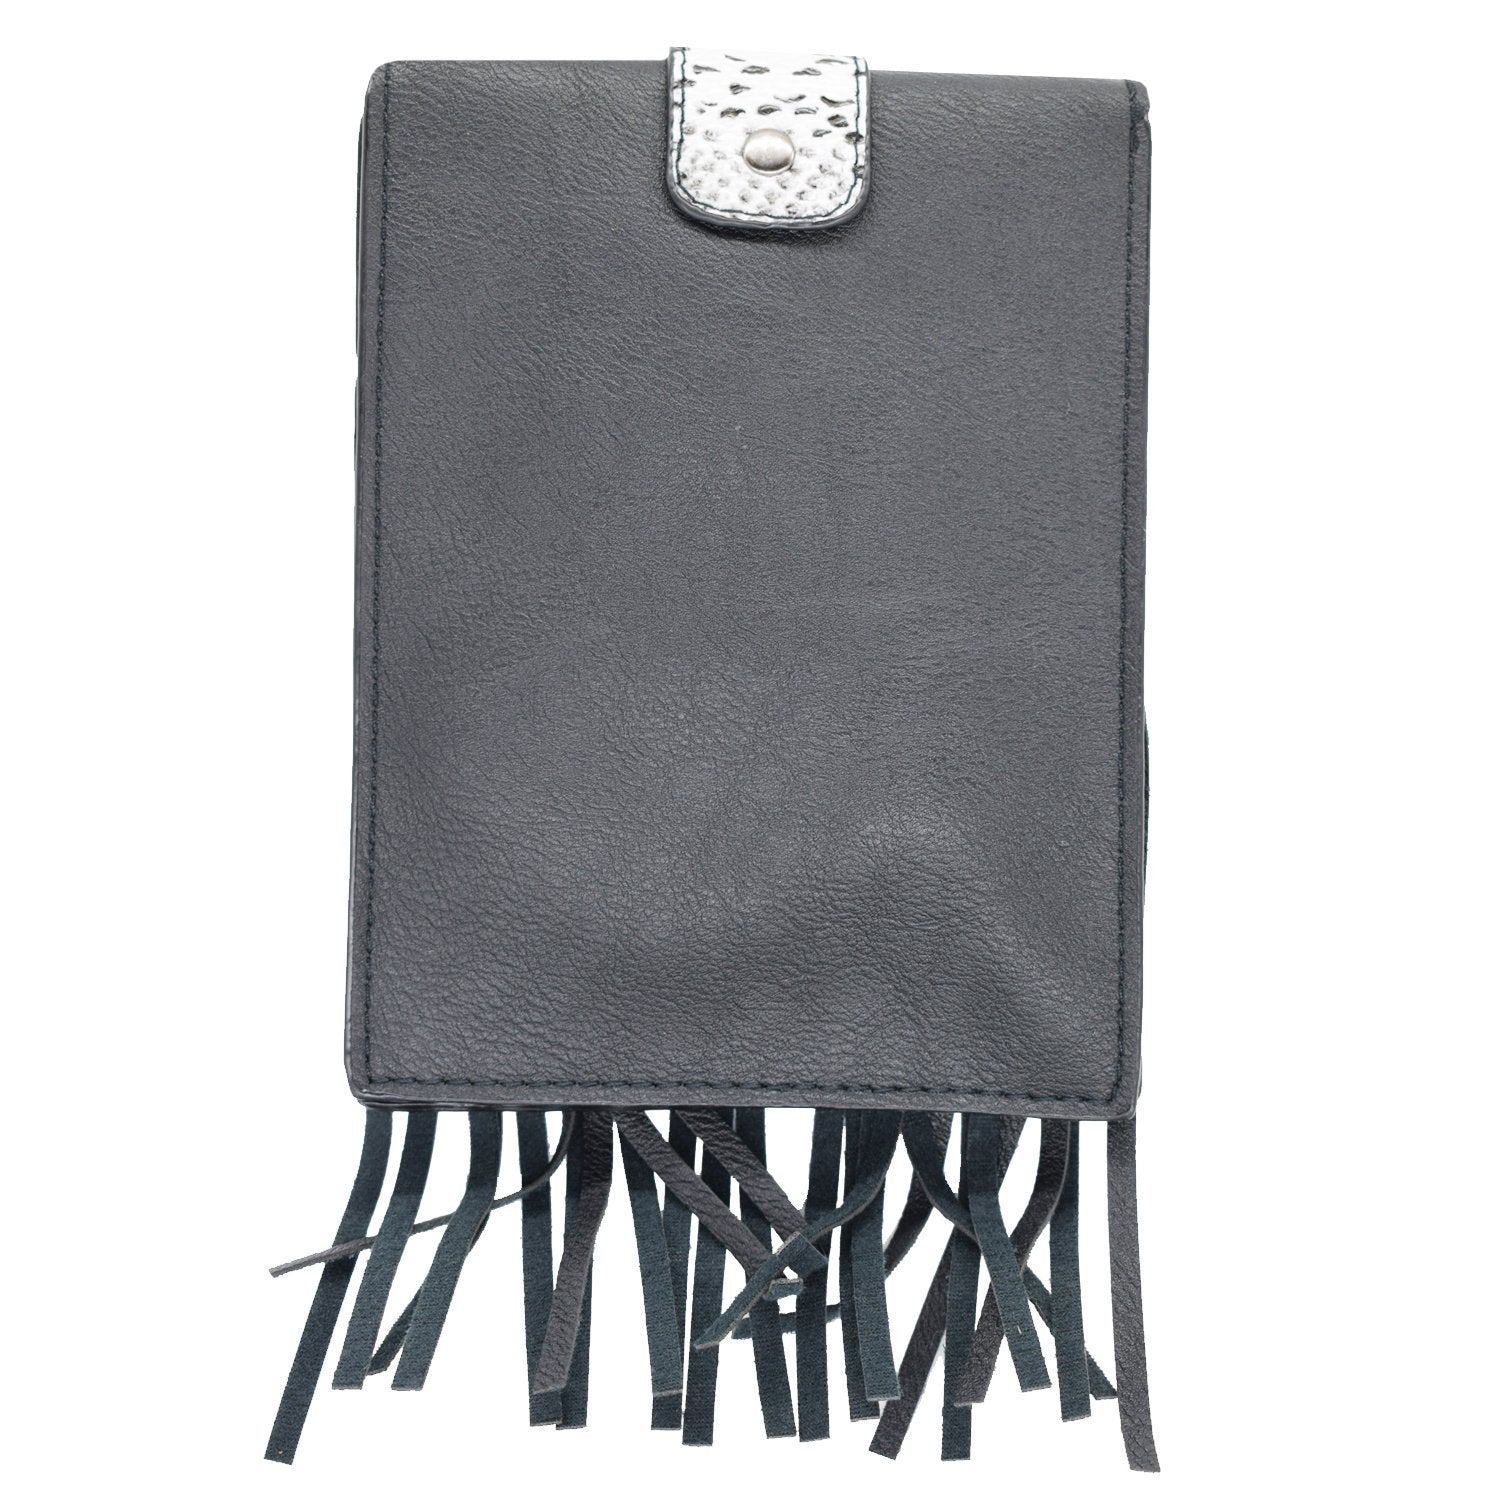 Small Fringes Sling Bag (Black) - Bagaholics Gift